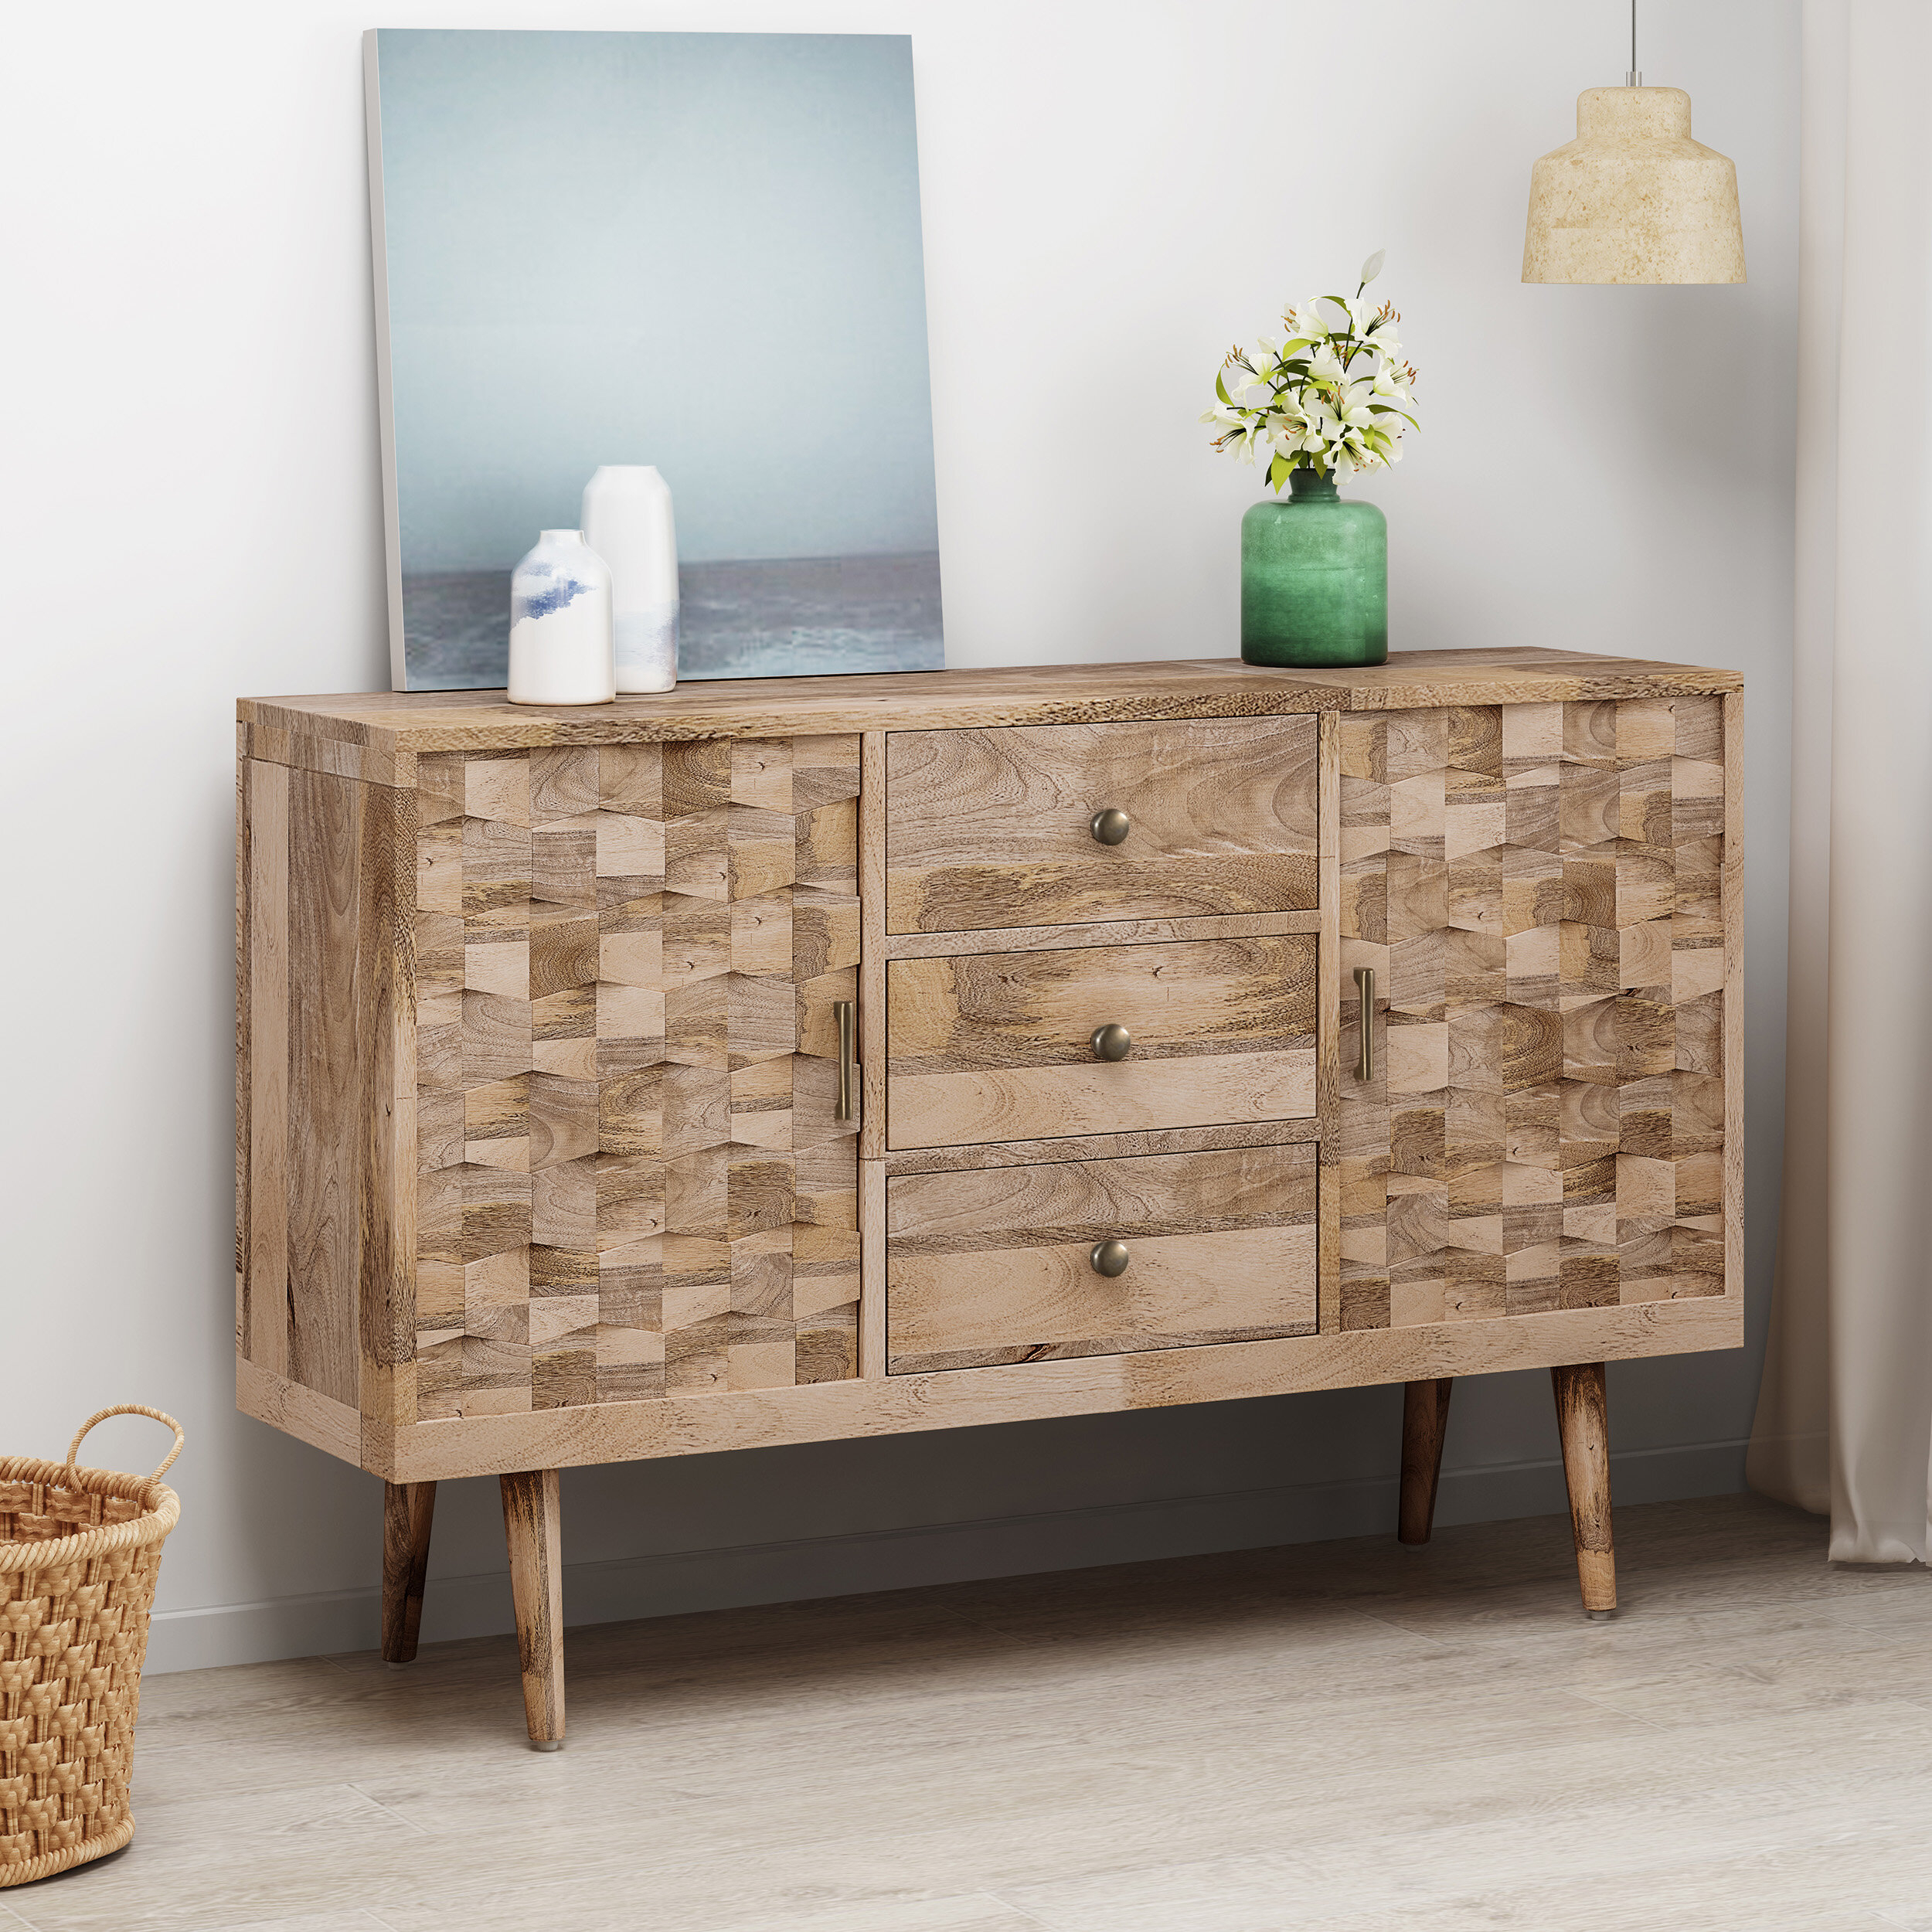 Westra Mid-Century Modern Mango Wood 3 Drawer Sideboard within Rosson Sideboards (Image 24 of 30)